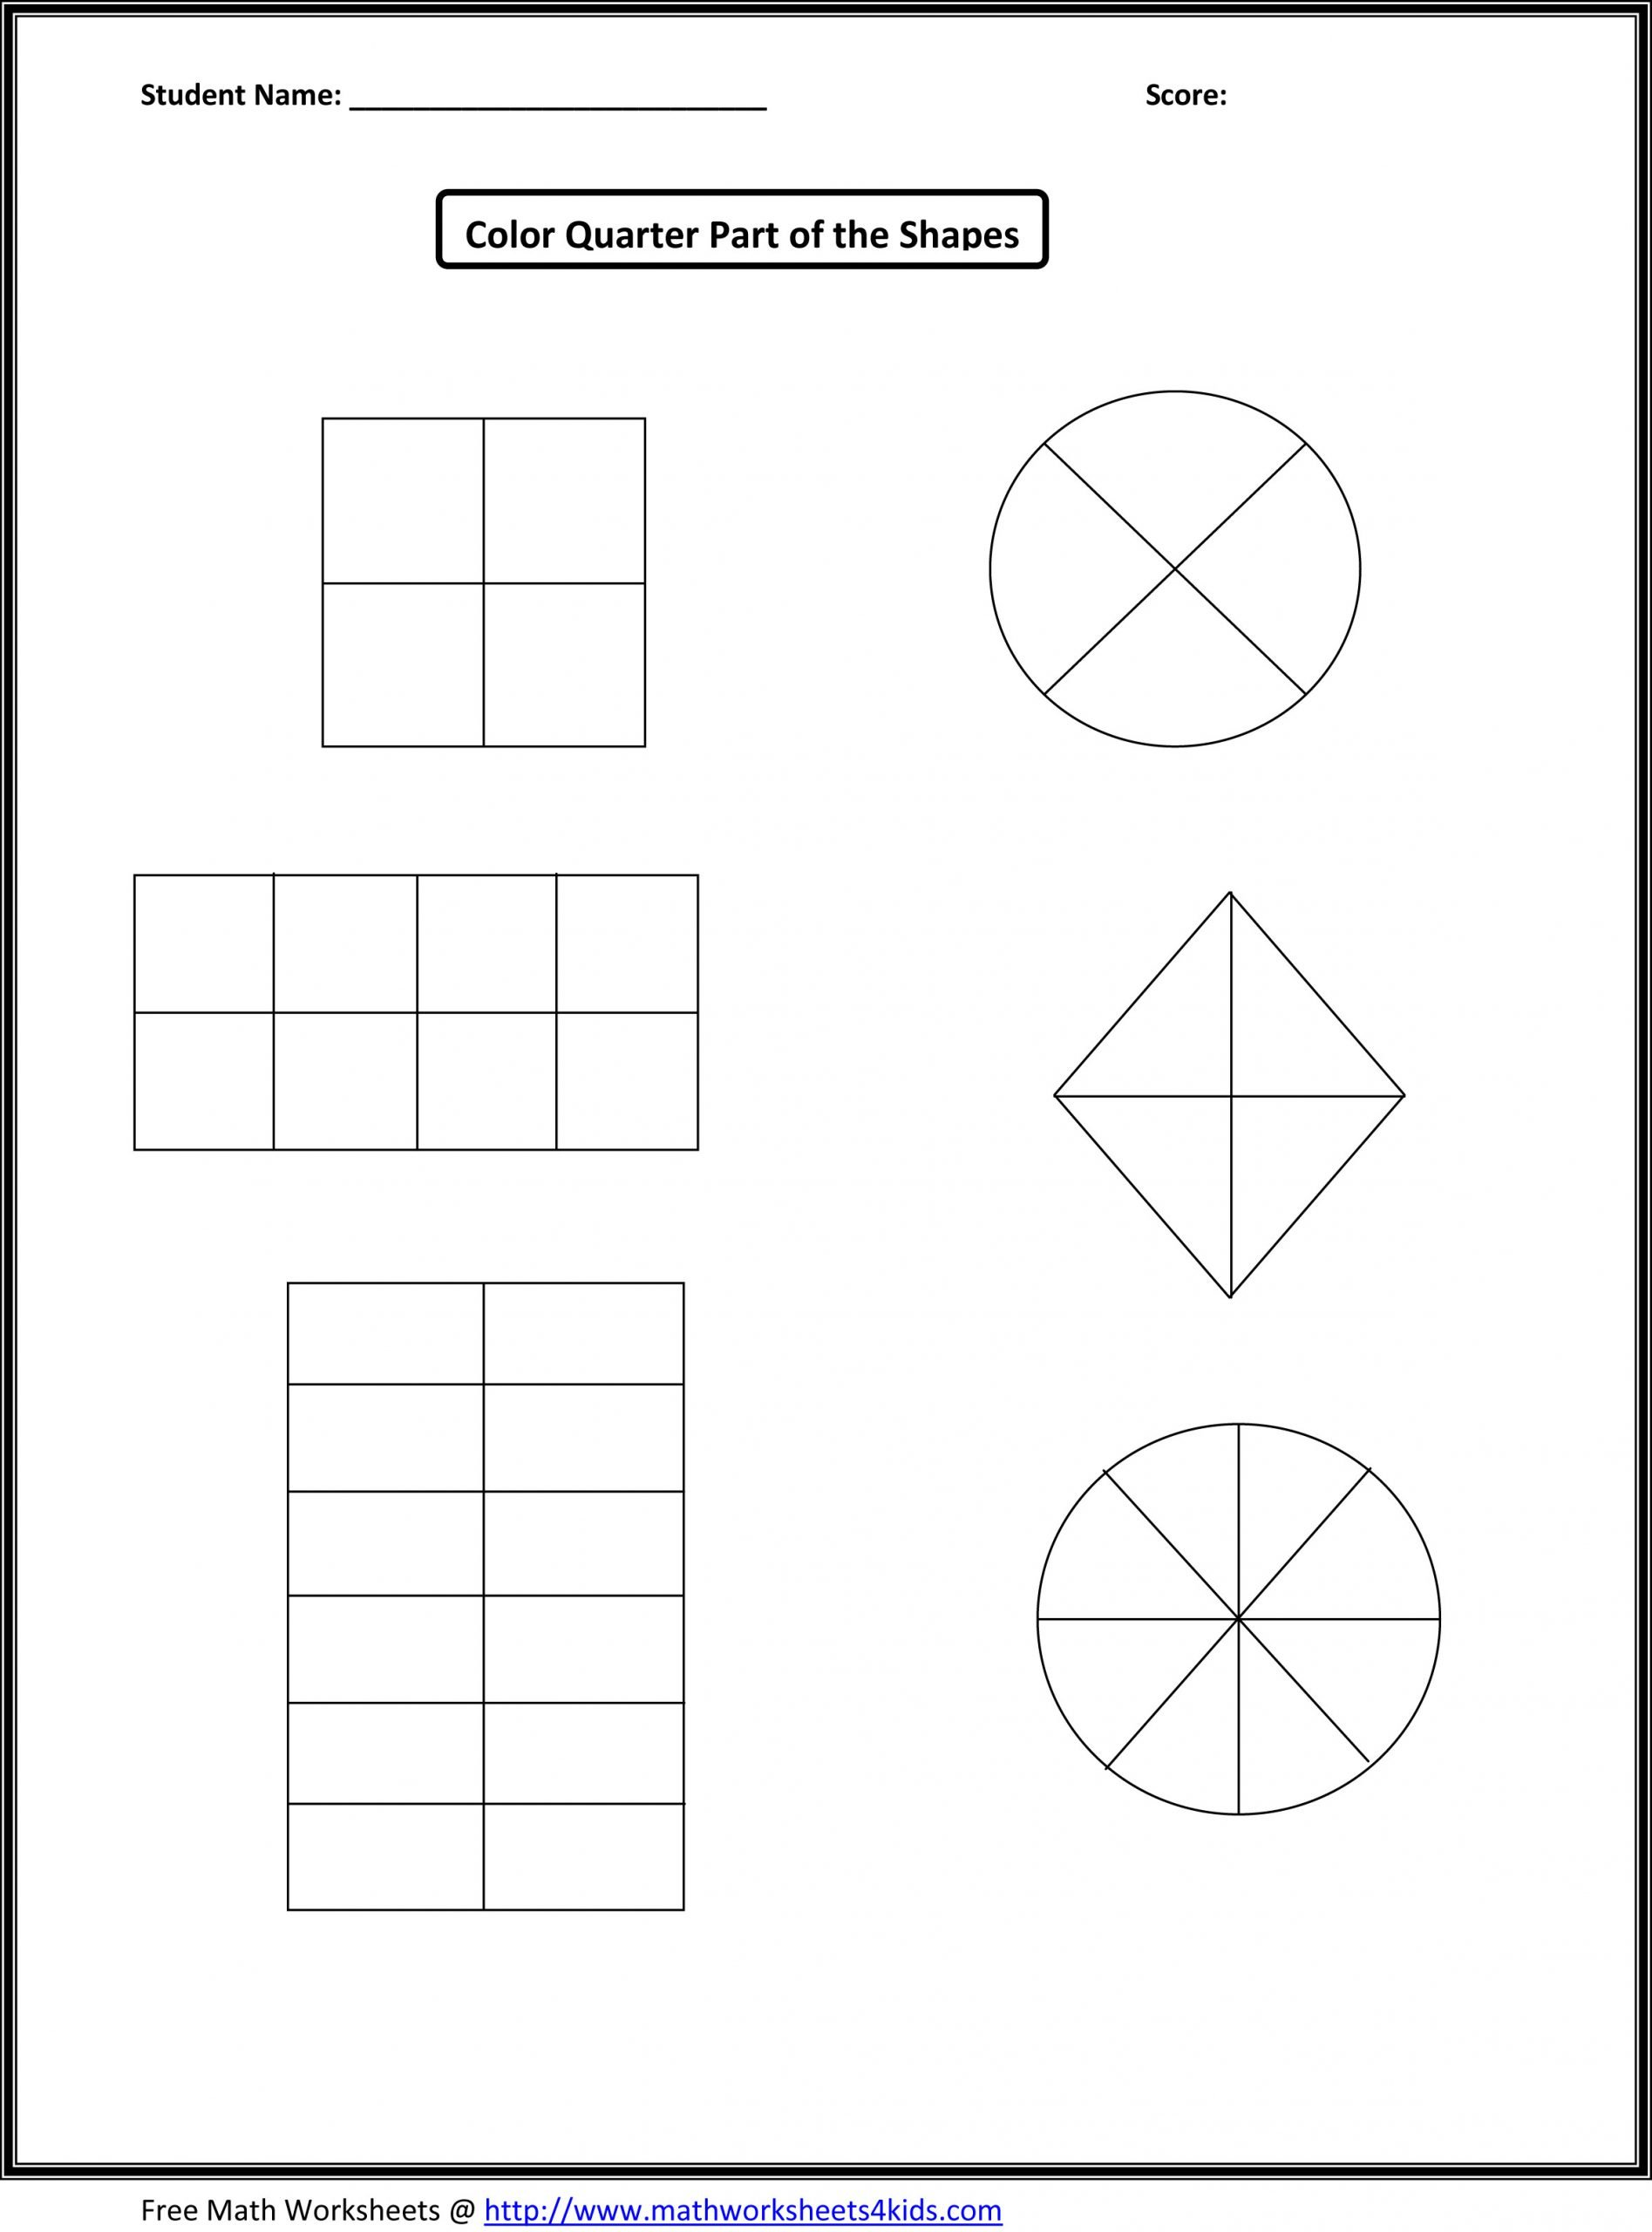 Halves Thirds Fourths Worksheets A1 Wk 7 8 Halves and Quarters Shapes Numbers Lessons Tes